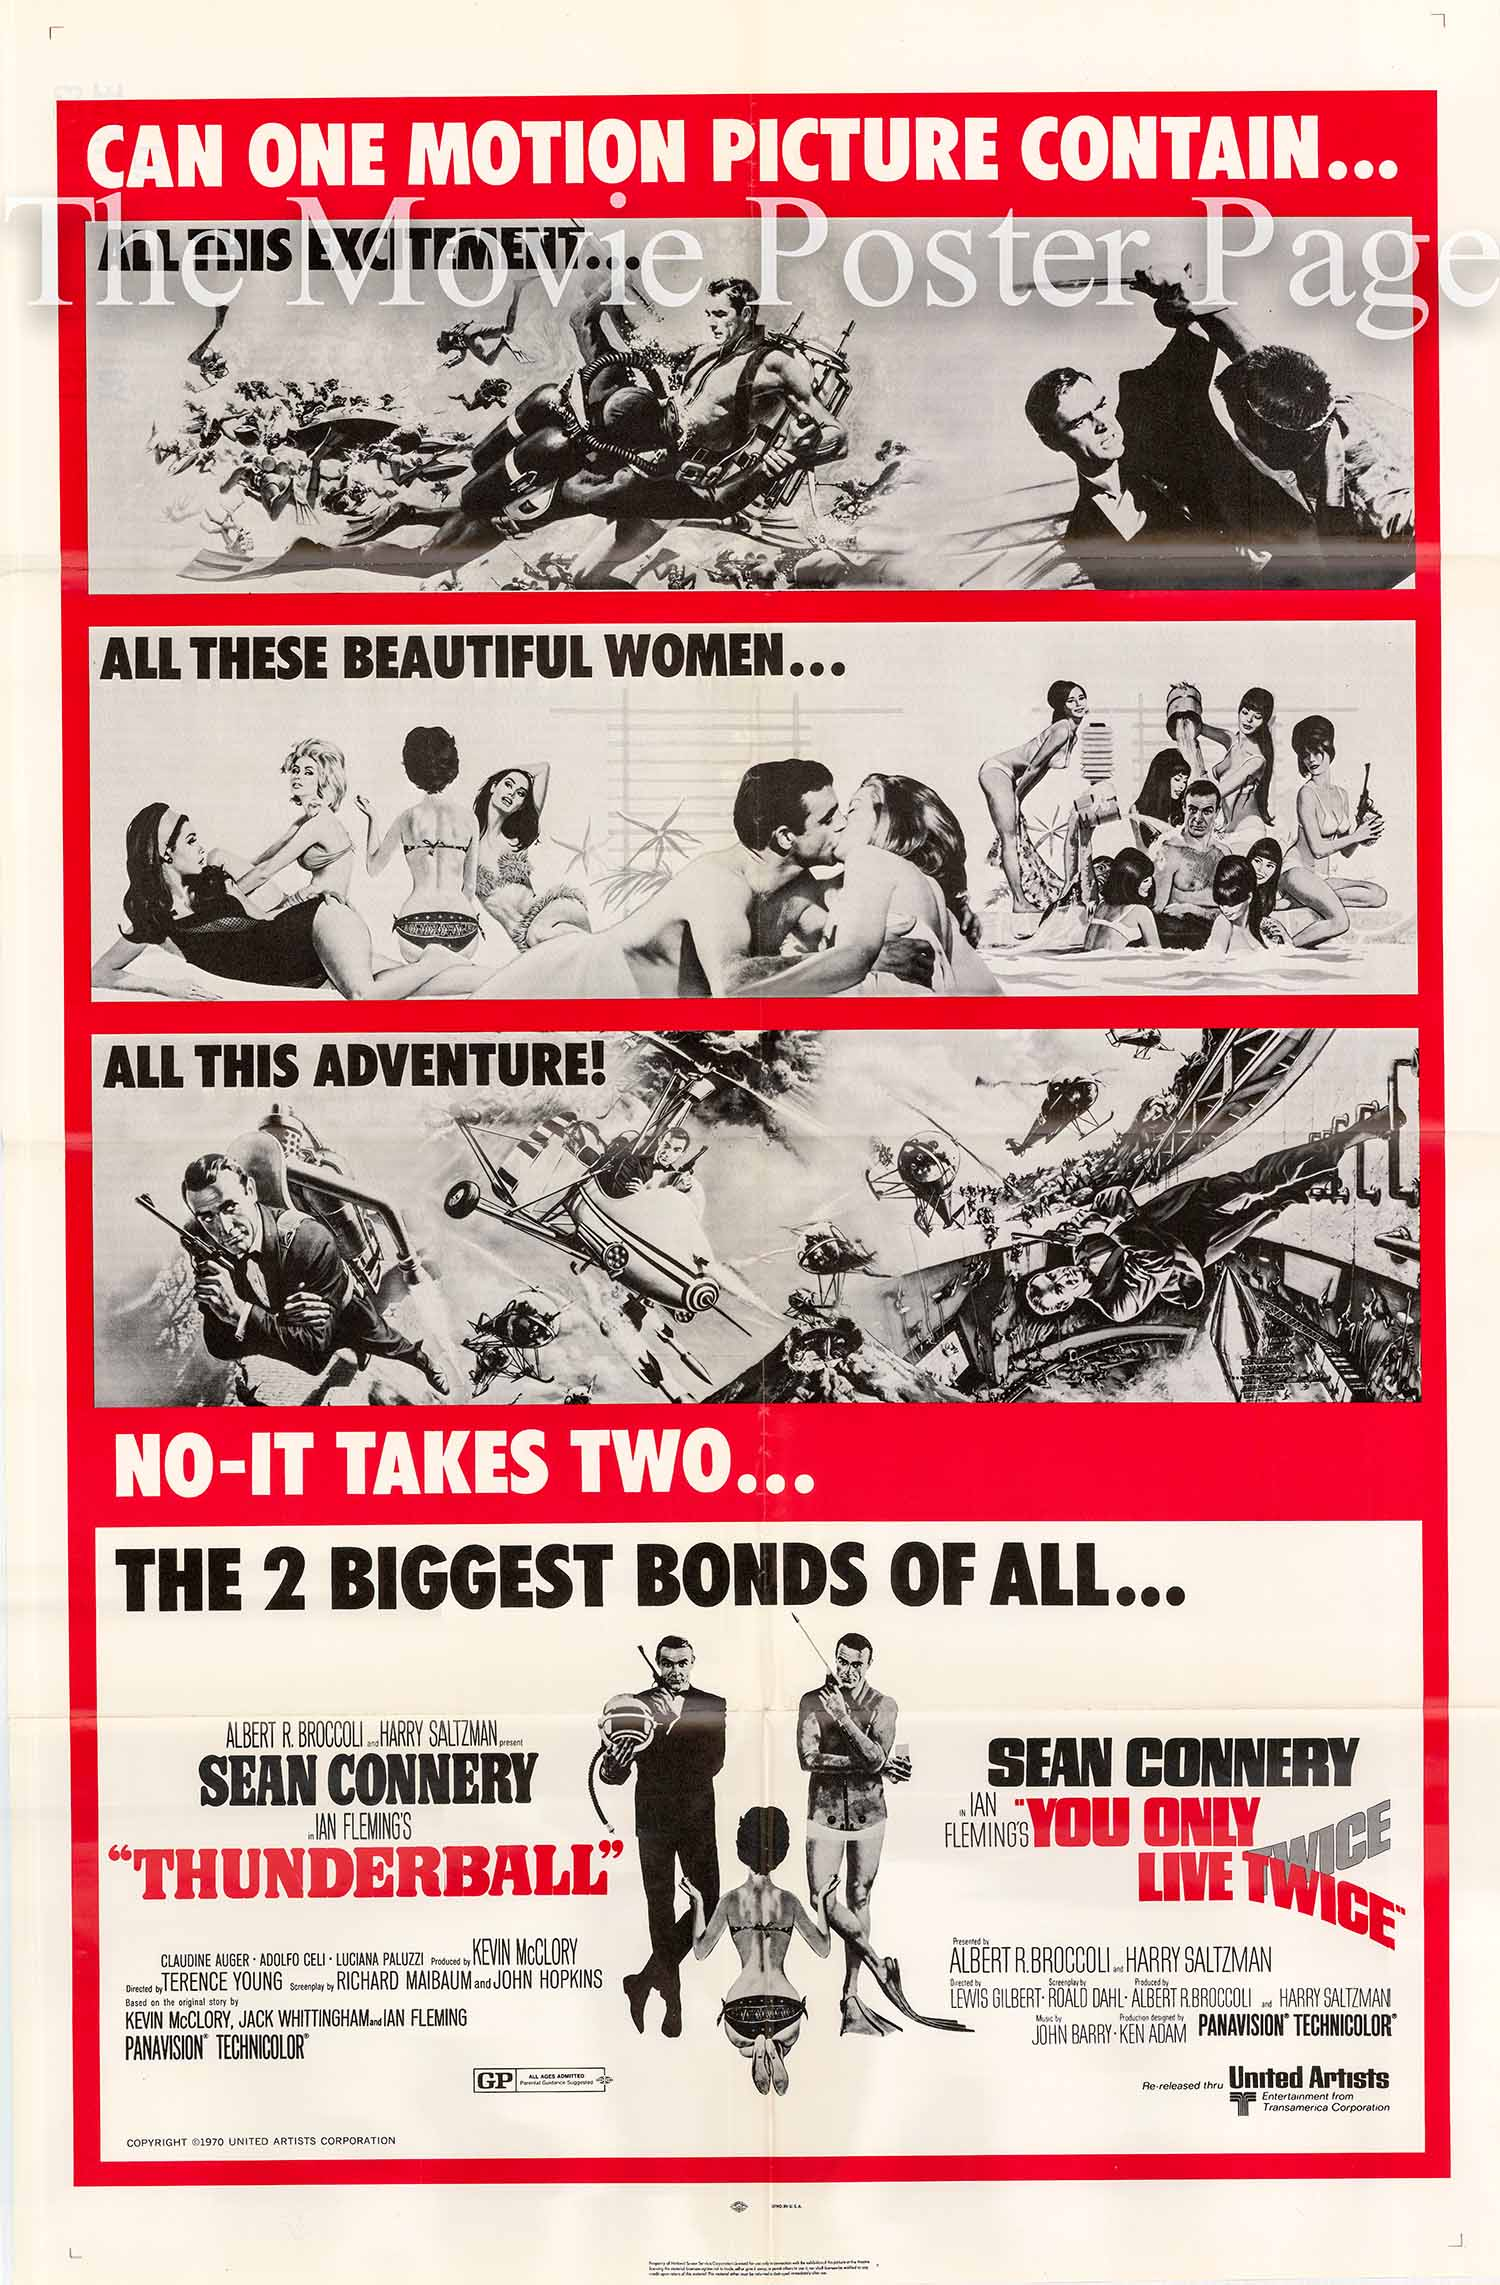 Pictured is a US combo one-sheet poster for promoting a 1971 double feature rerelease of the films Thunderball and You Only Live Twice starring Sean Connery as James Bond.